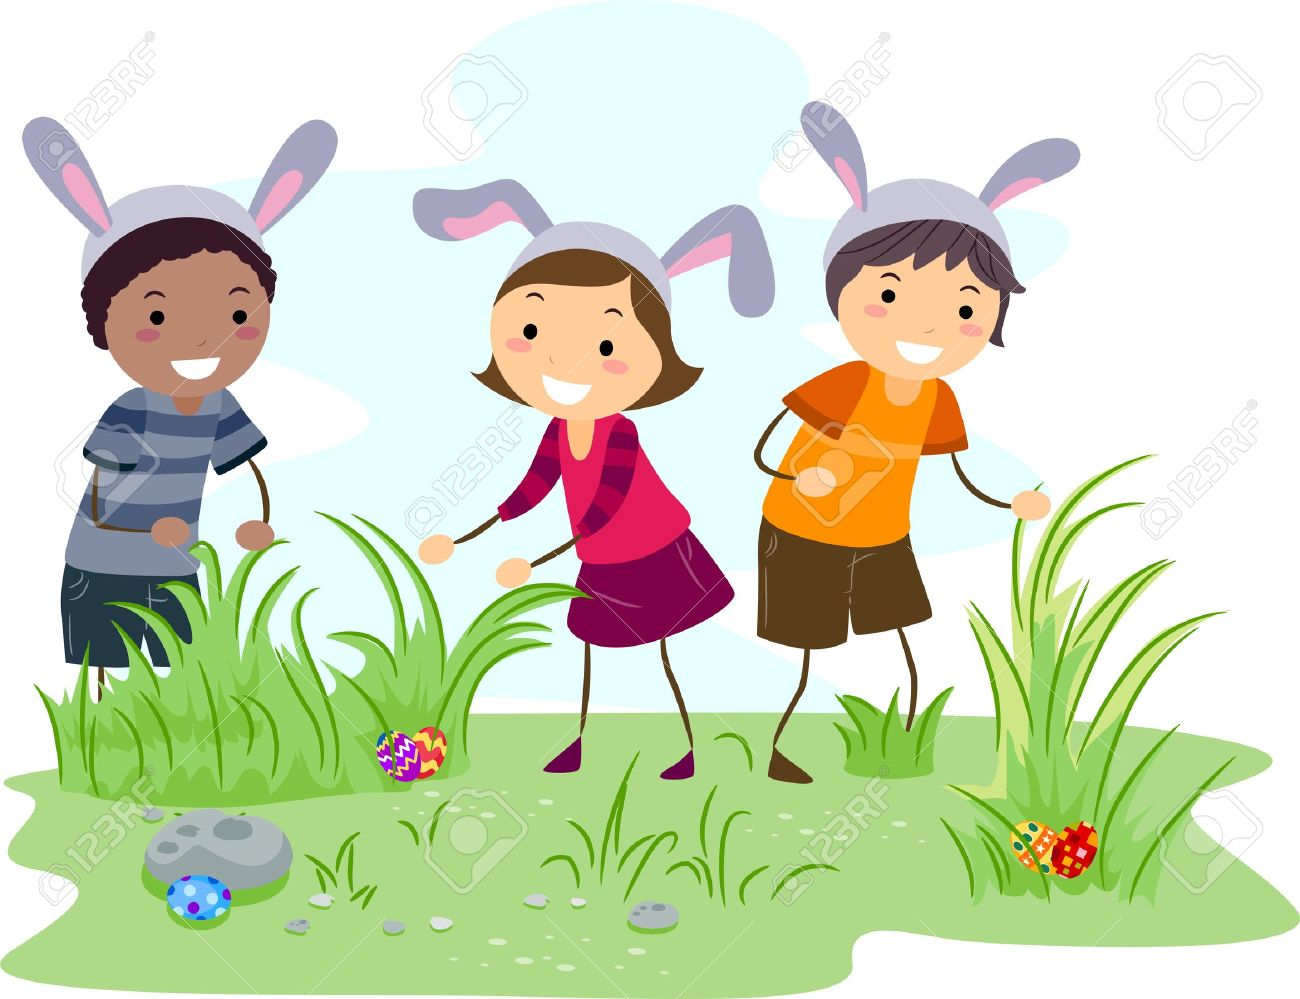 Easter Bunny Hunt Clip Art – Clipart Free Download graphic free stock